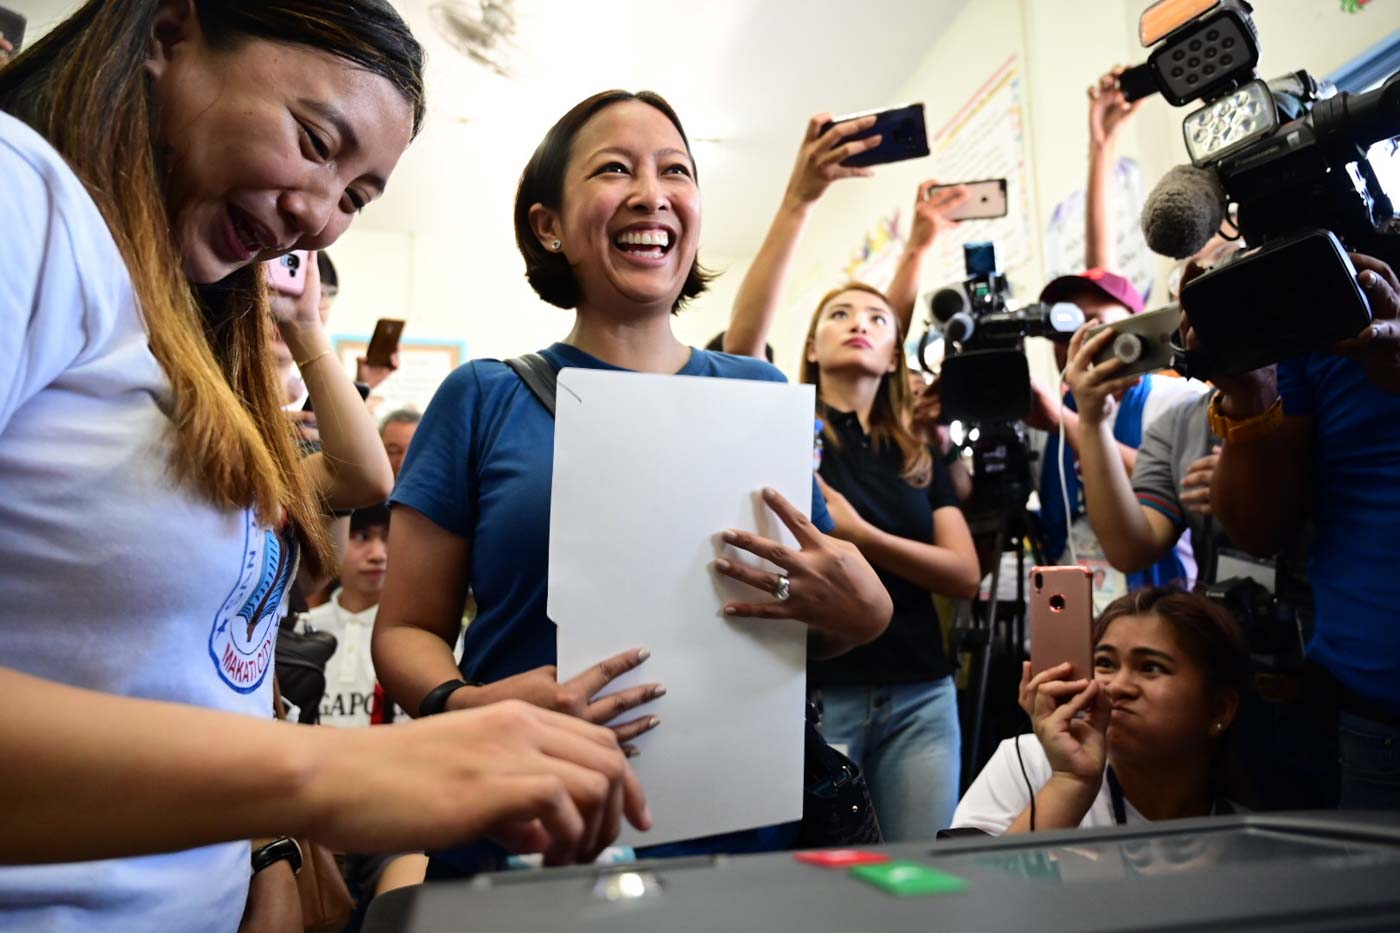 ALL SMILES. Reelectionist Makati City Mayor Abby Binay is all smiles as she feeds her ballot into the vote-counting machine. Photo by Alecs Ongcal/Rappler